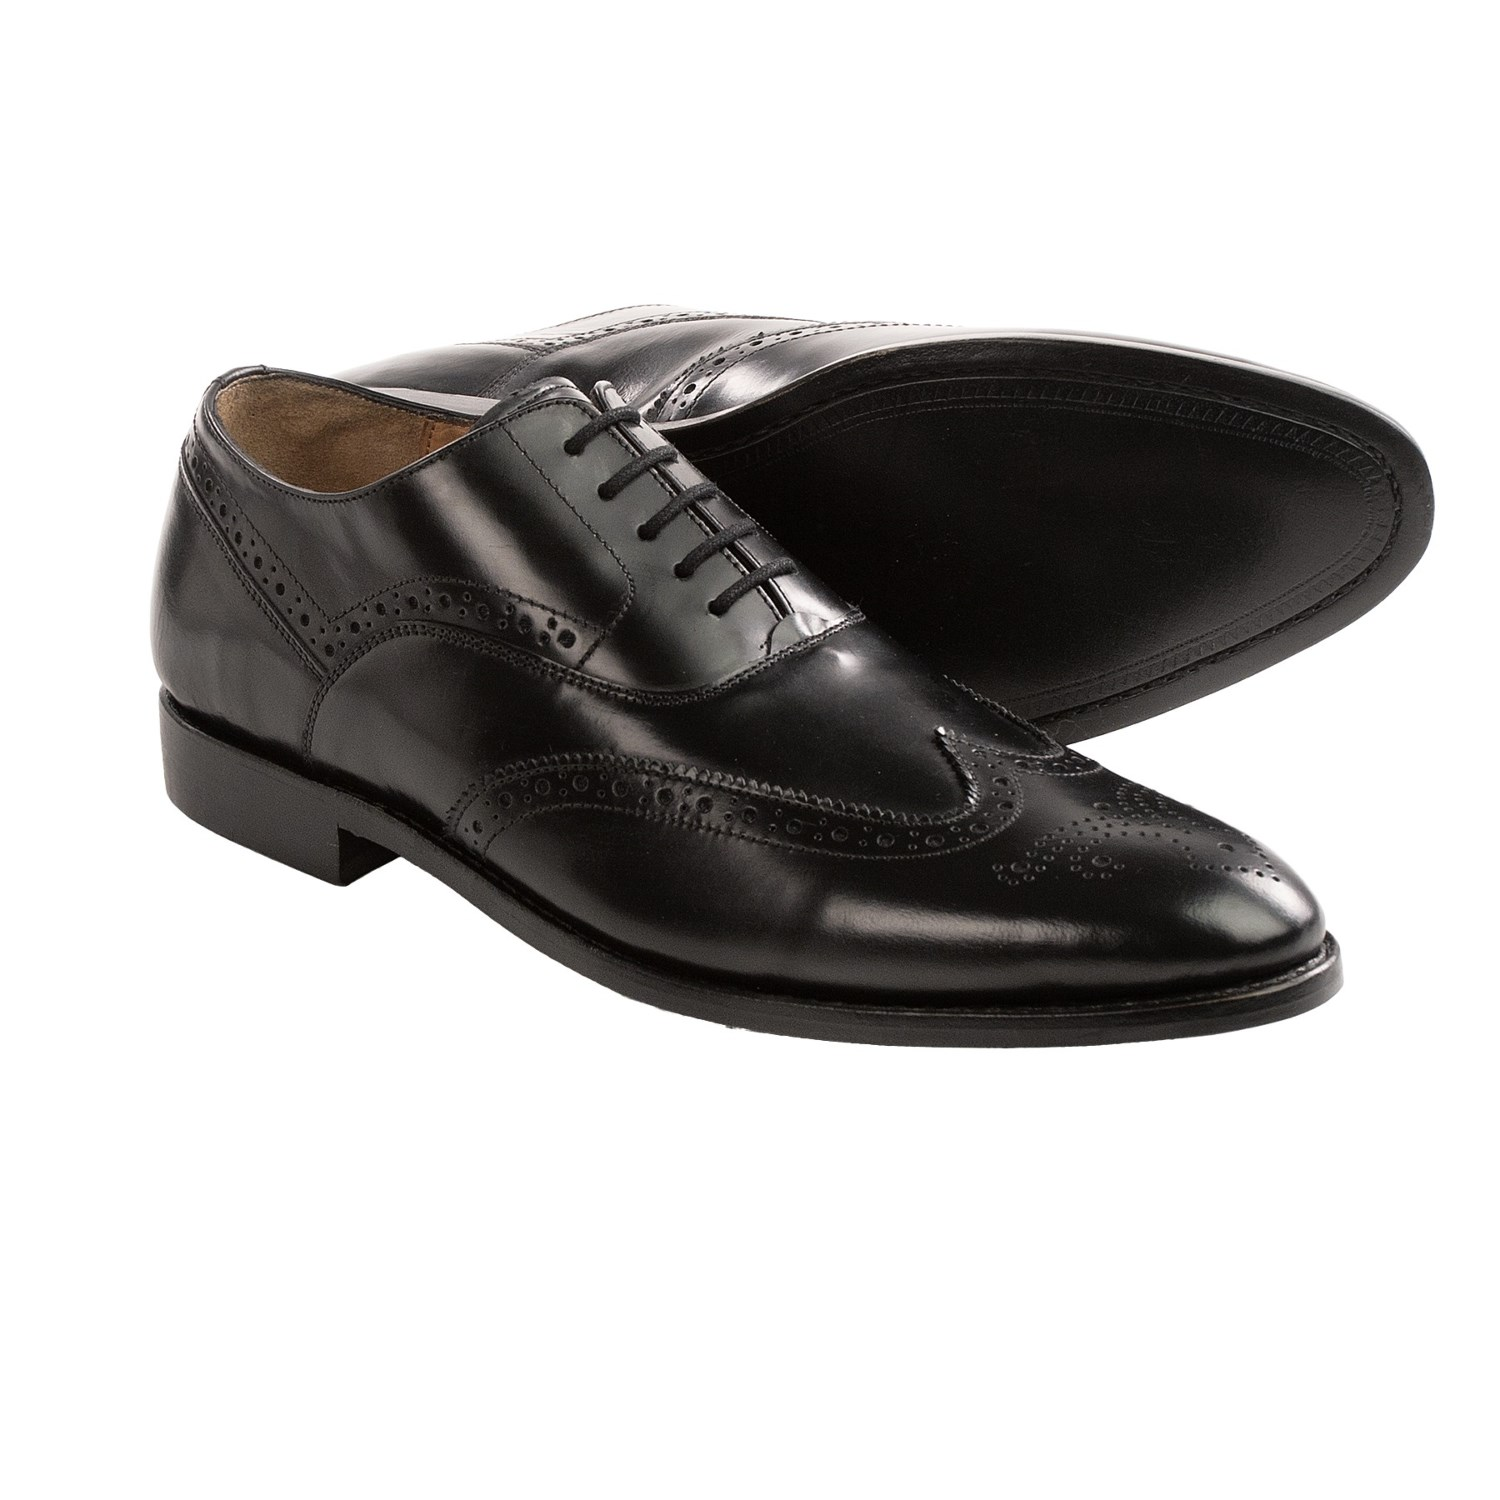 Submit Your Own Image · Joseph Abboud Austin Oxford Shoes